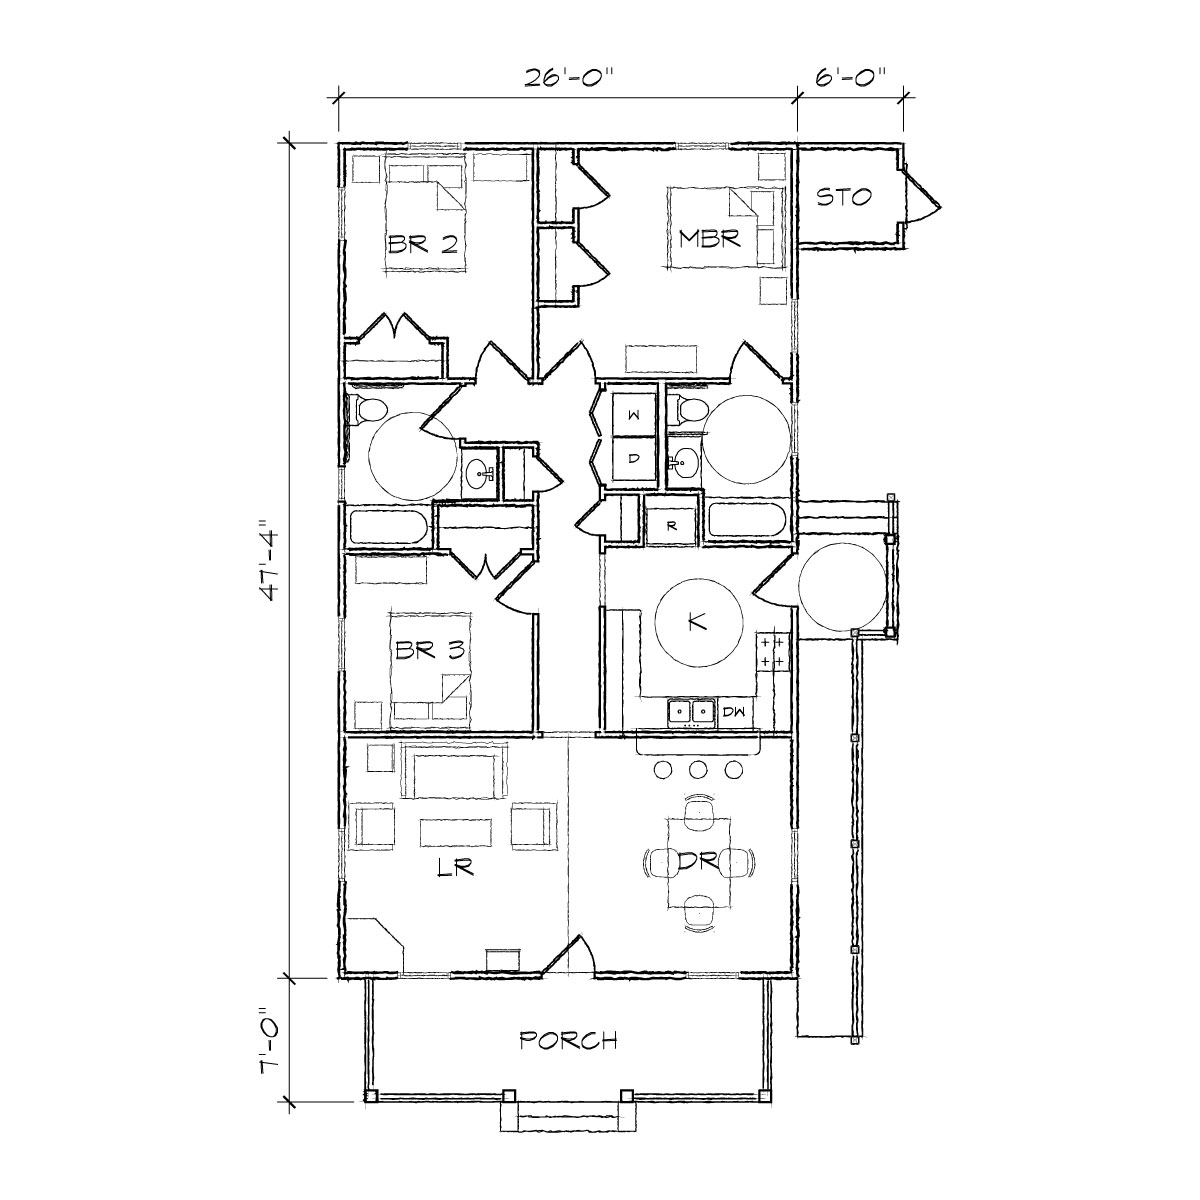 2 bedroom bungalow plans bungalow floor plan floor plan for Floor plan bungalow house philippines